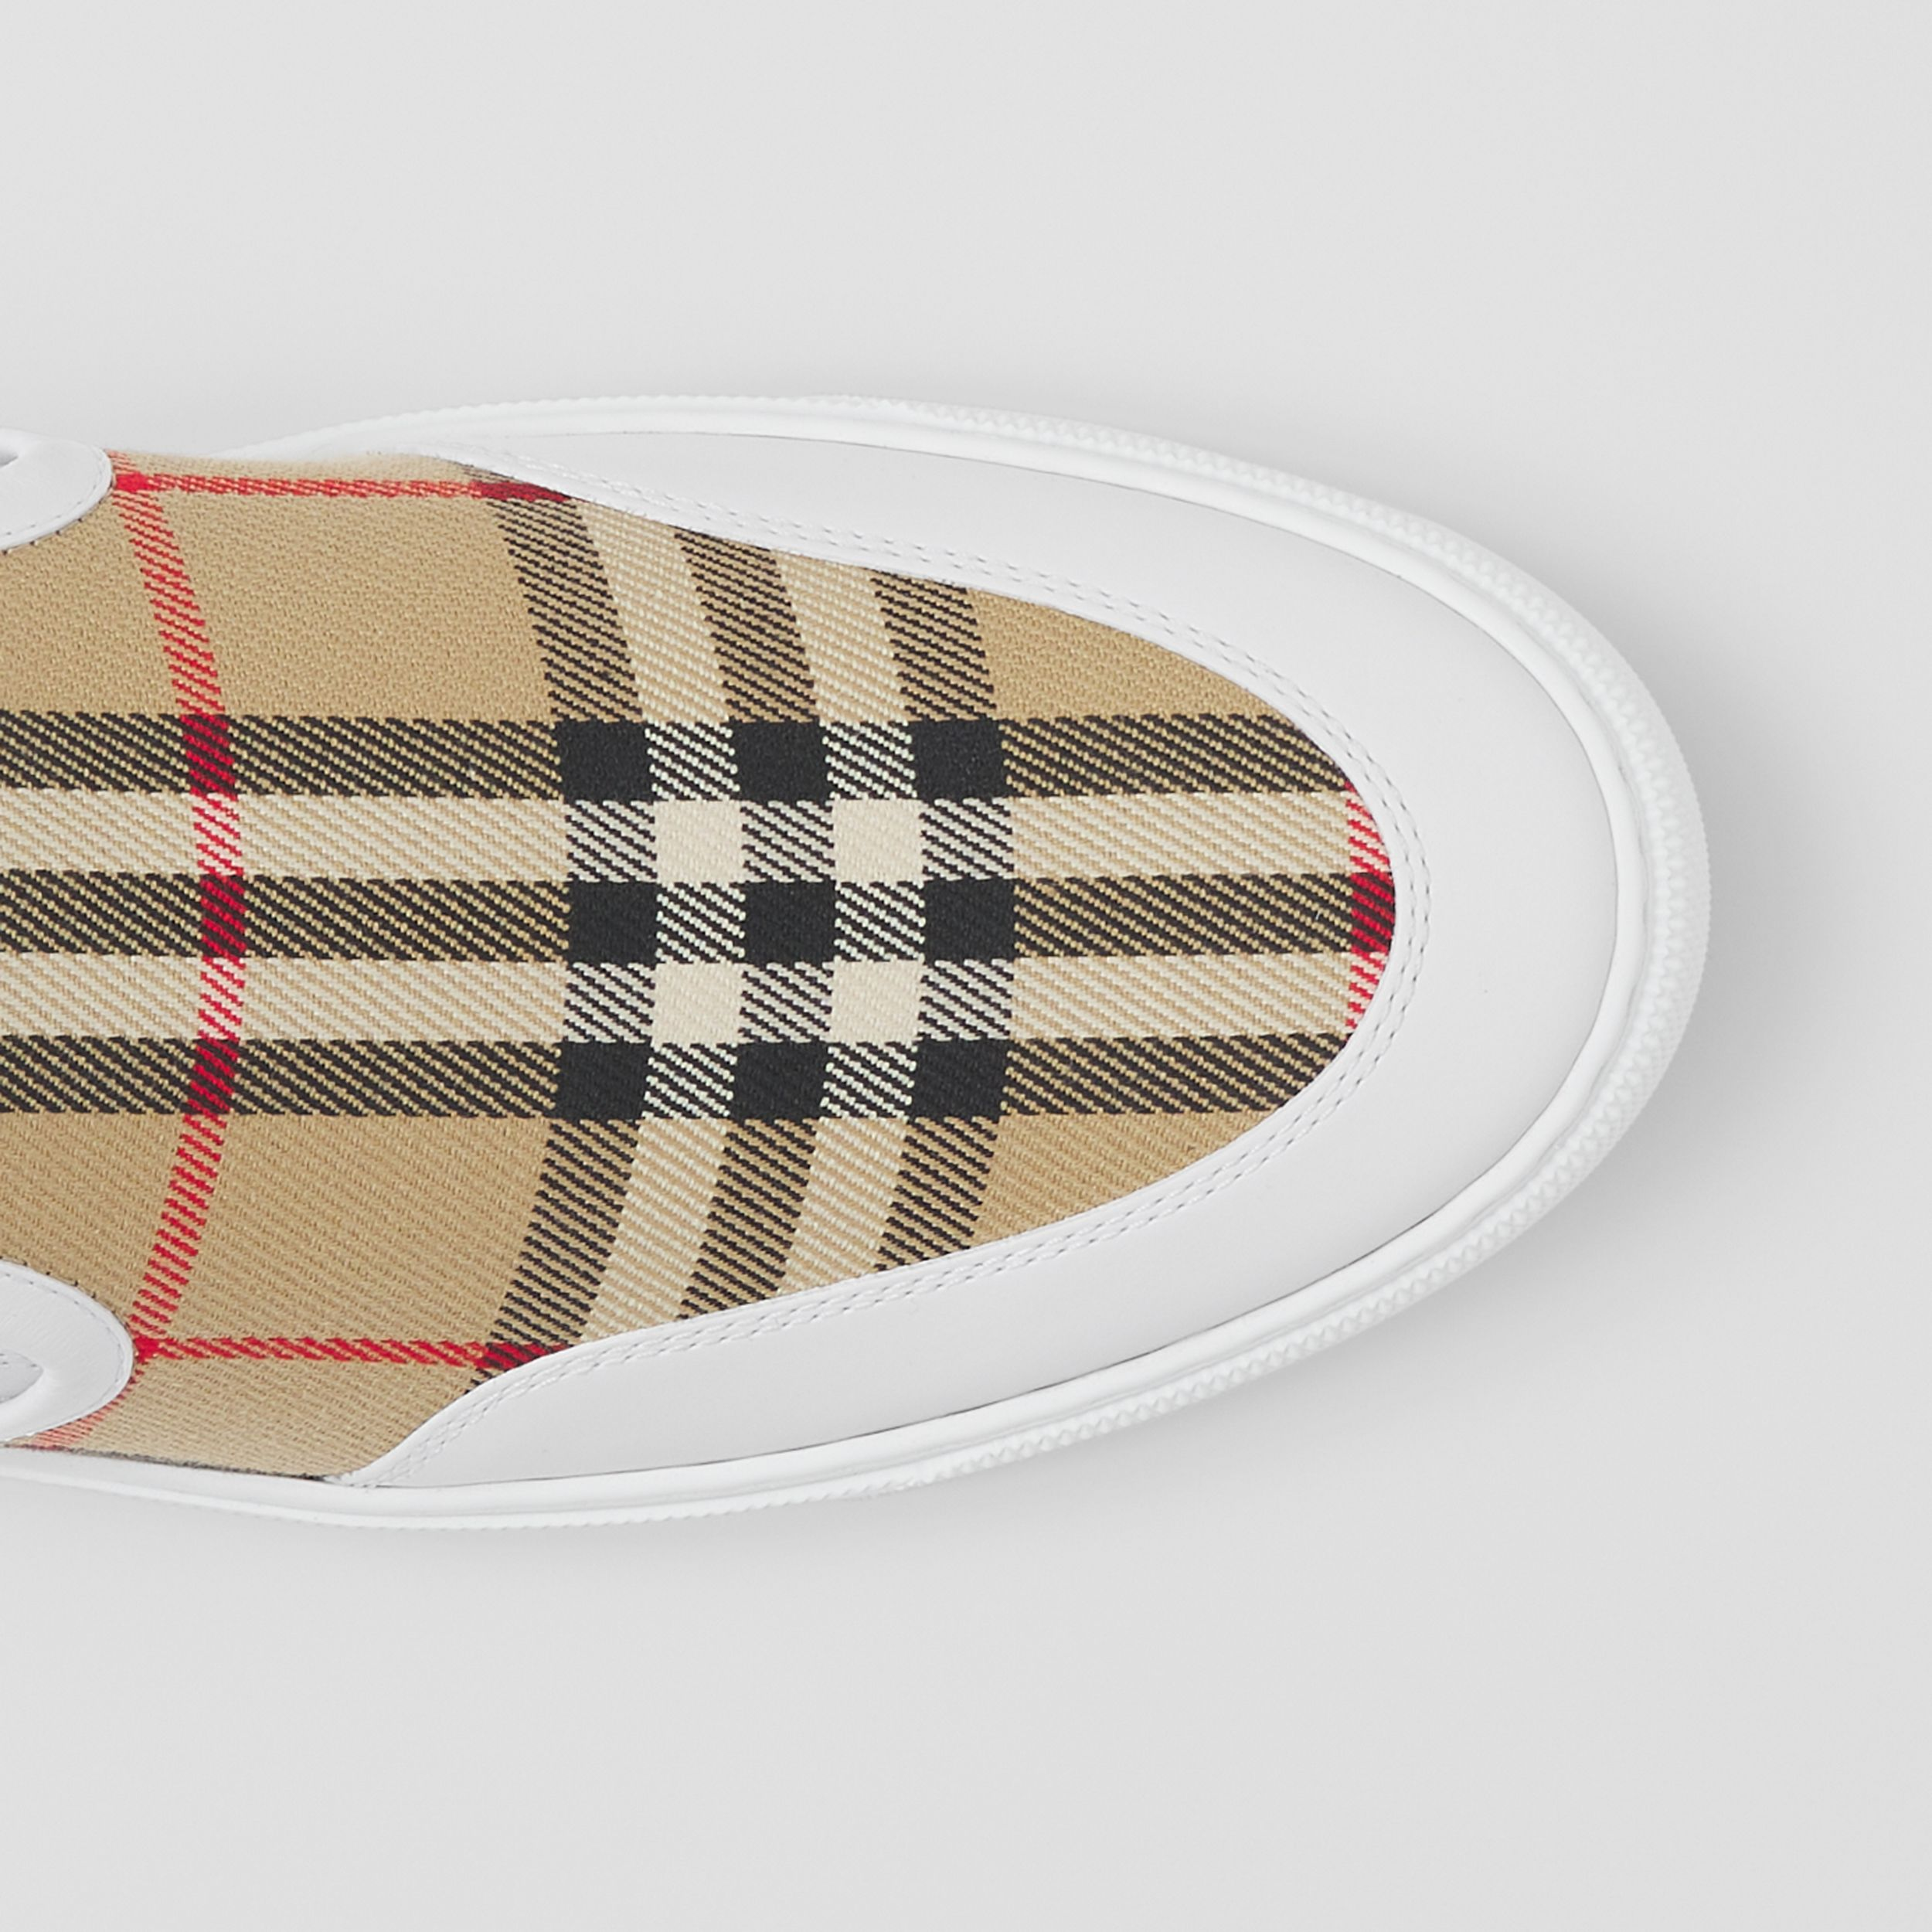 Leather and Vintage Check Slip-on Sneakers in White/archive Beige - Women | Burberry Singapore - 2